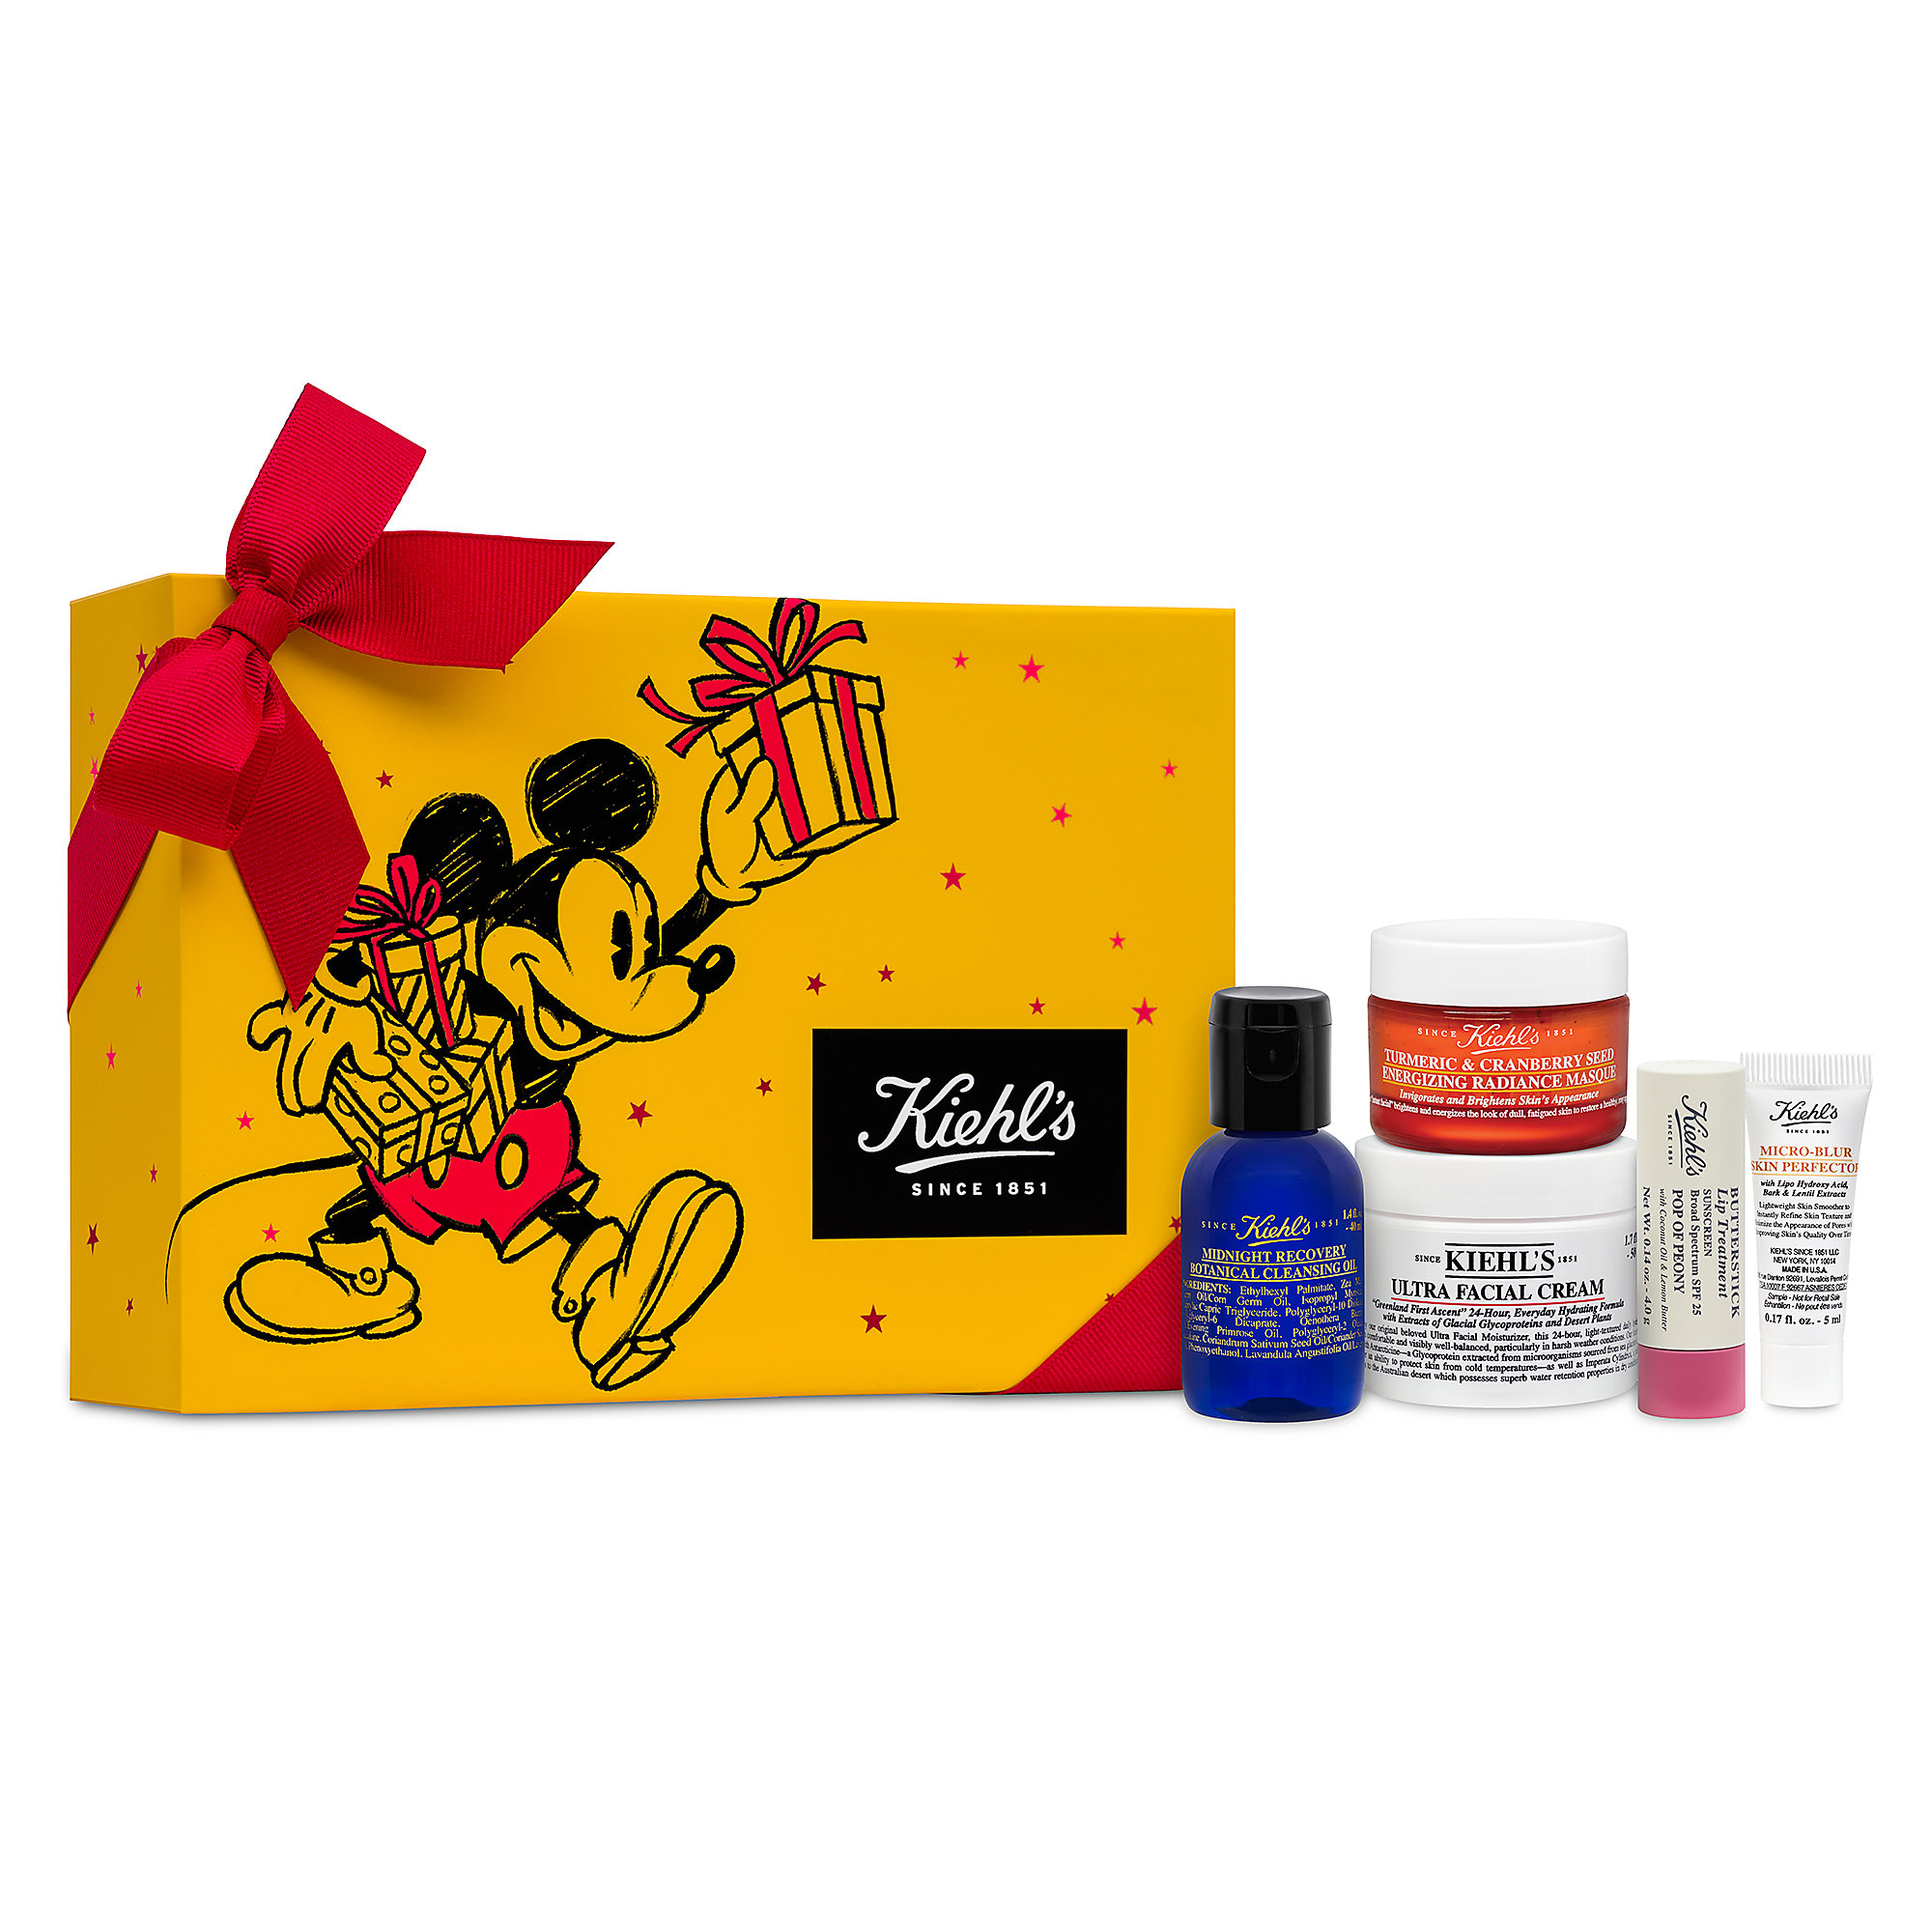 Mickey Mouse Merry and Bright Set by Kiehl's